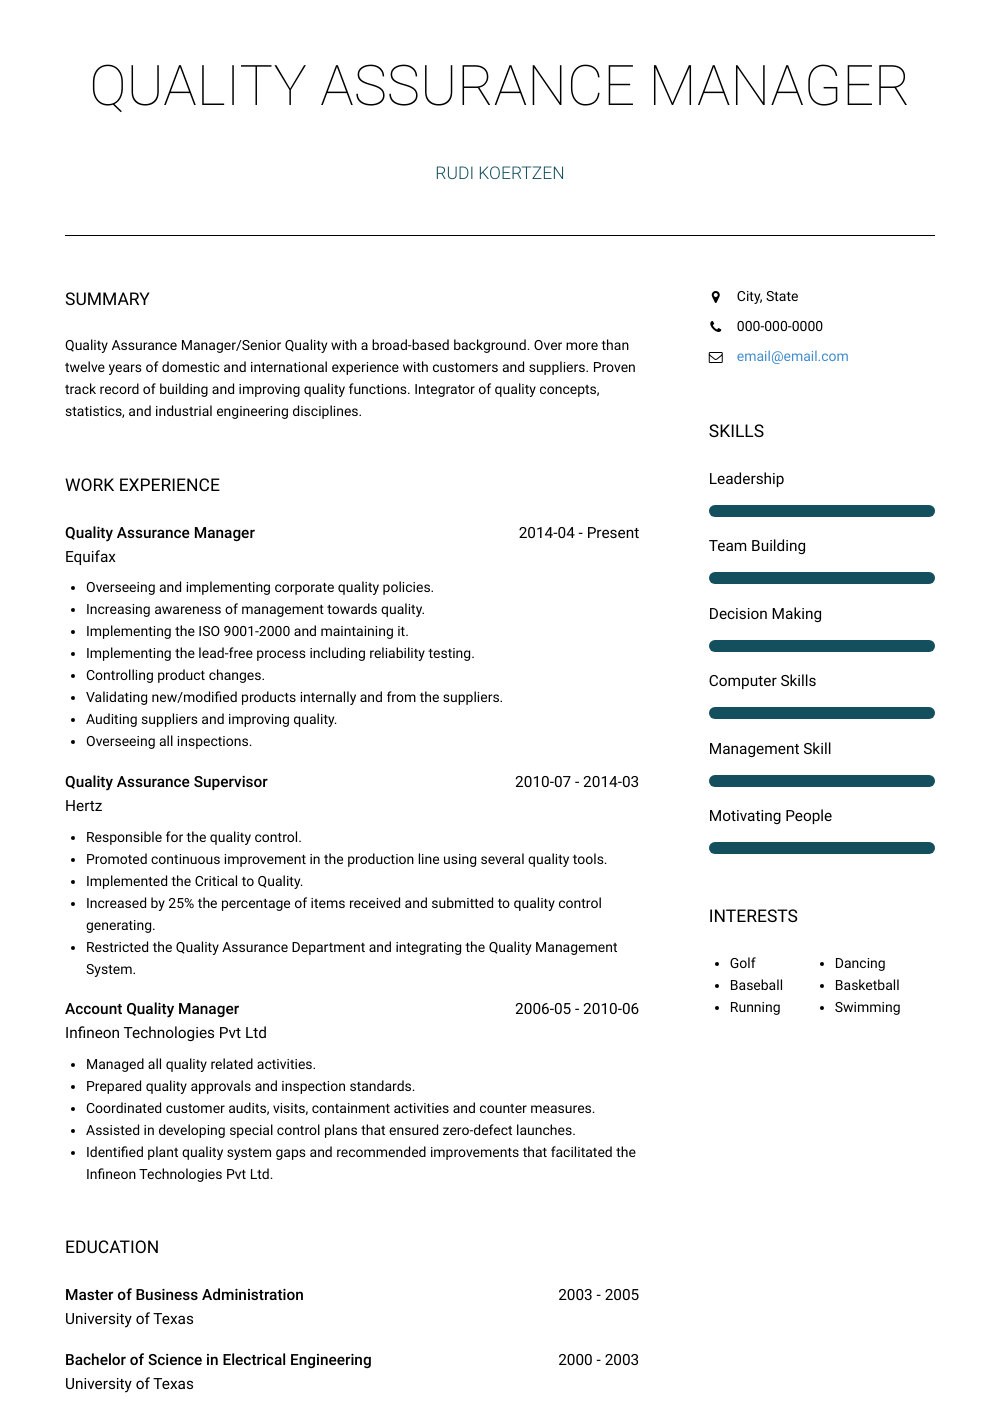 Quality Assurance Manager Resume Samples And Templates